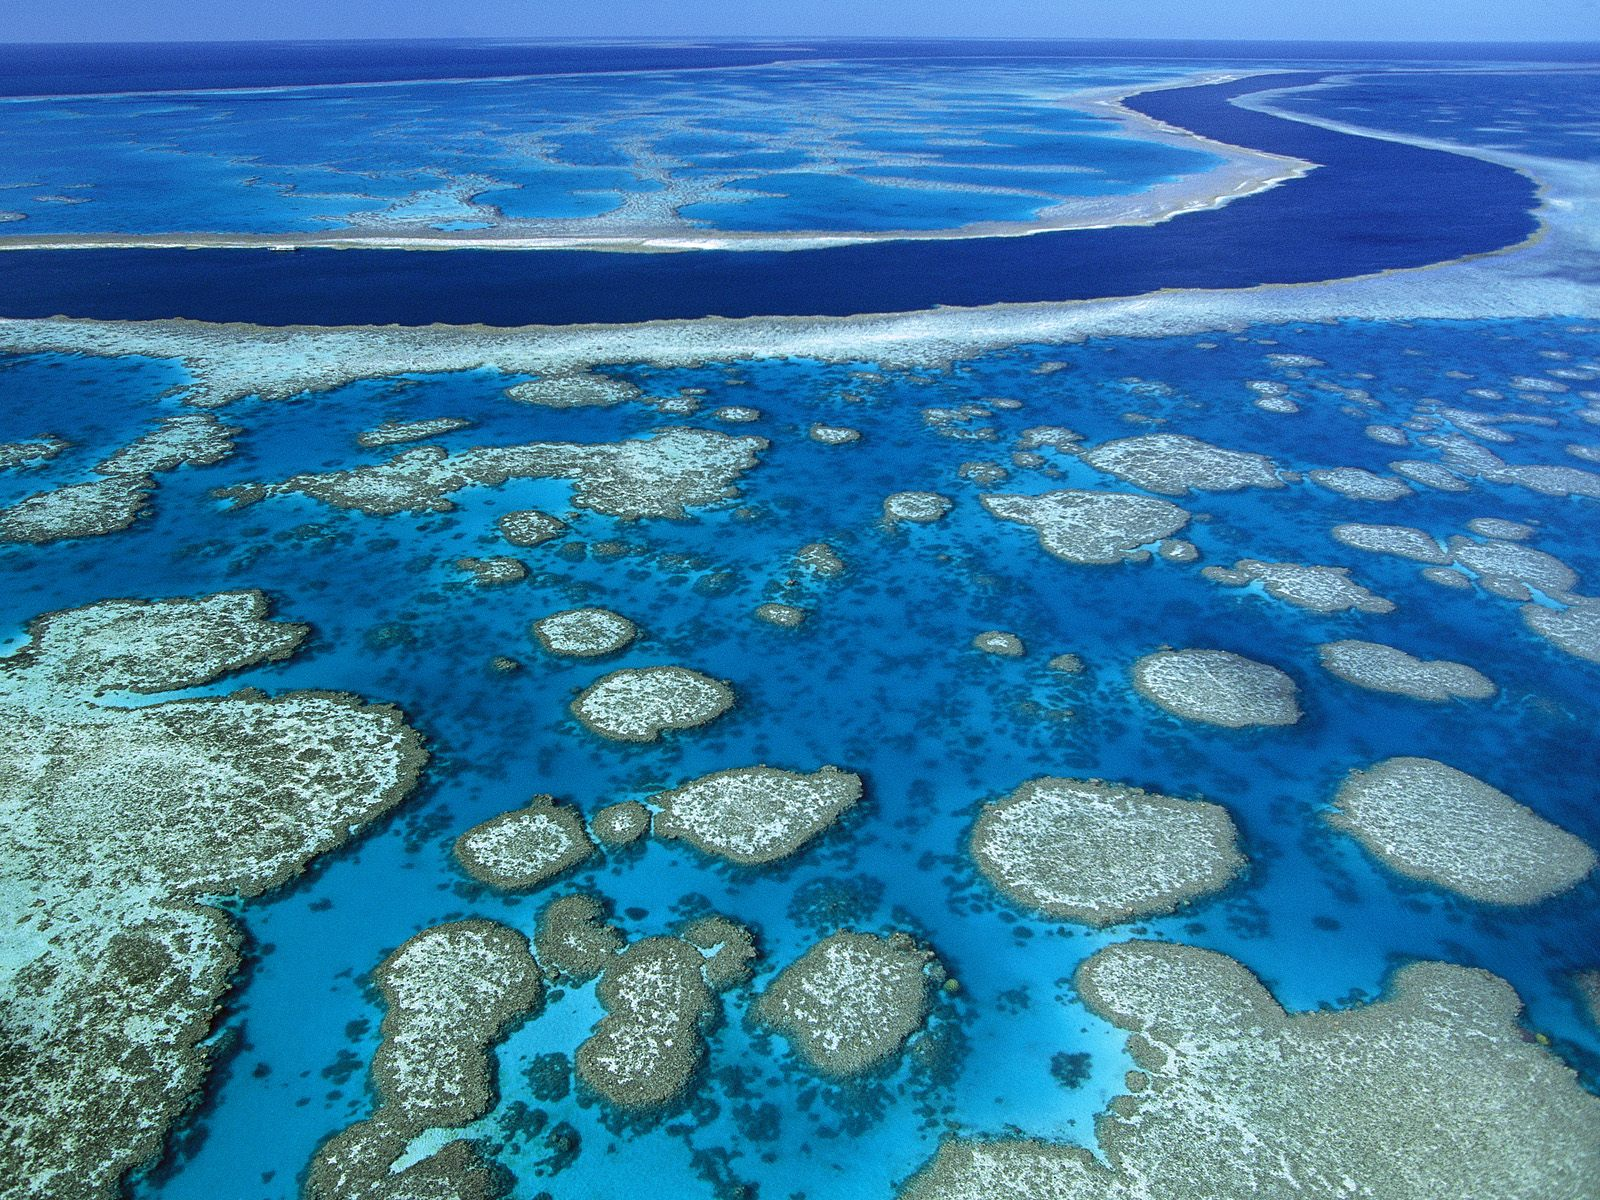 http://2.bp.blogspot.com/-ibEE5GbWFzA/T1-gLcmfPSI/AAAAAAAACmE/J9AyfkxD6aA/s1600/Great_Barrier_Reef_wallpaper_pictures_1.jpg